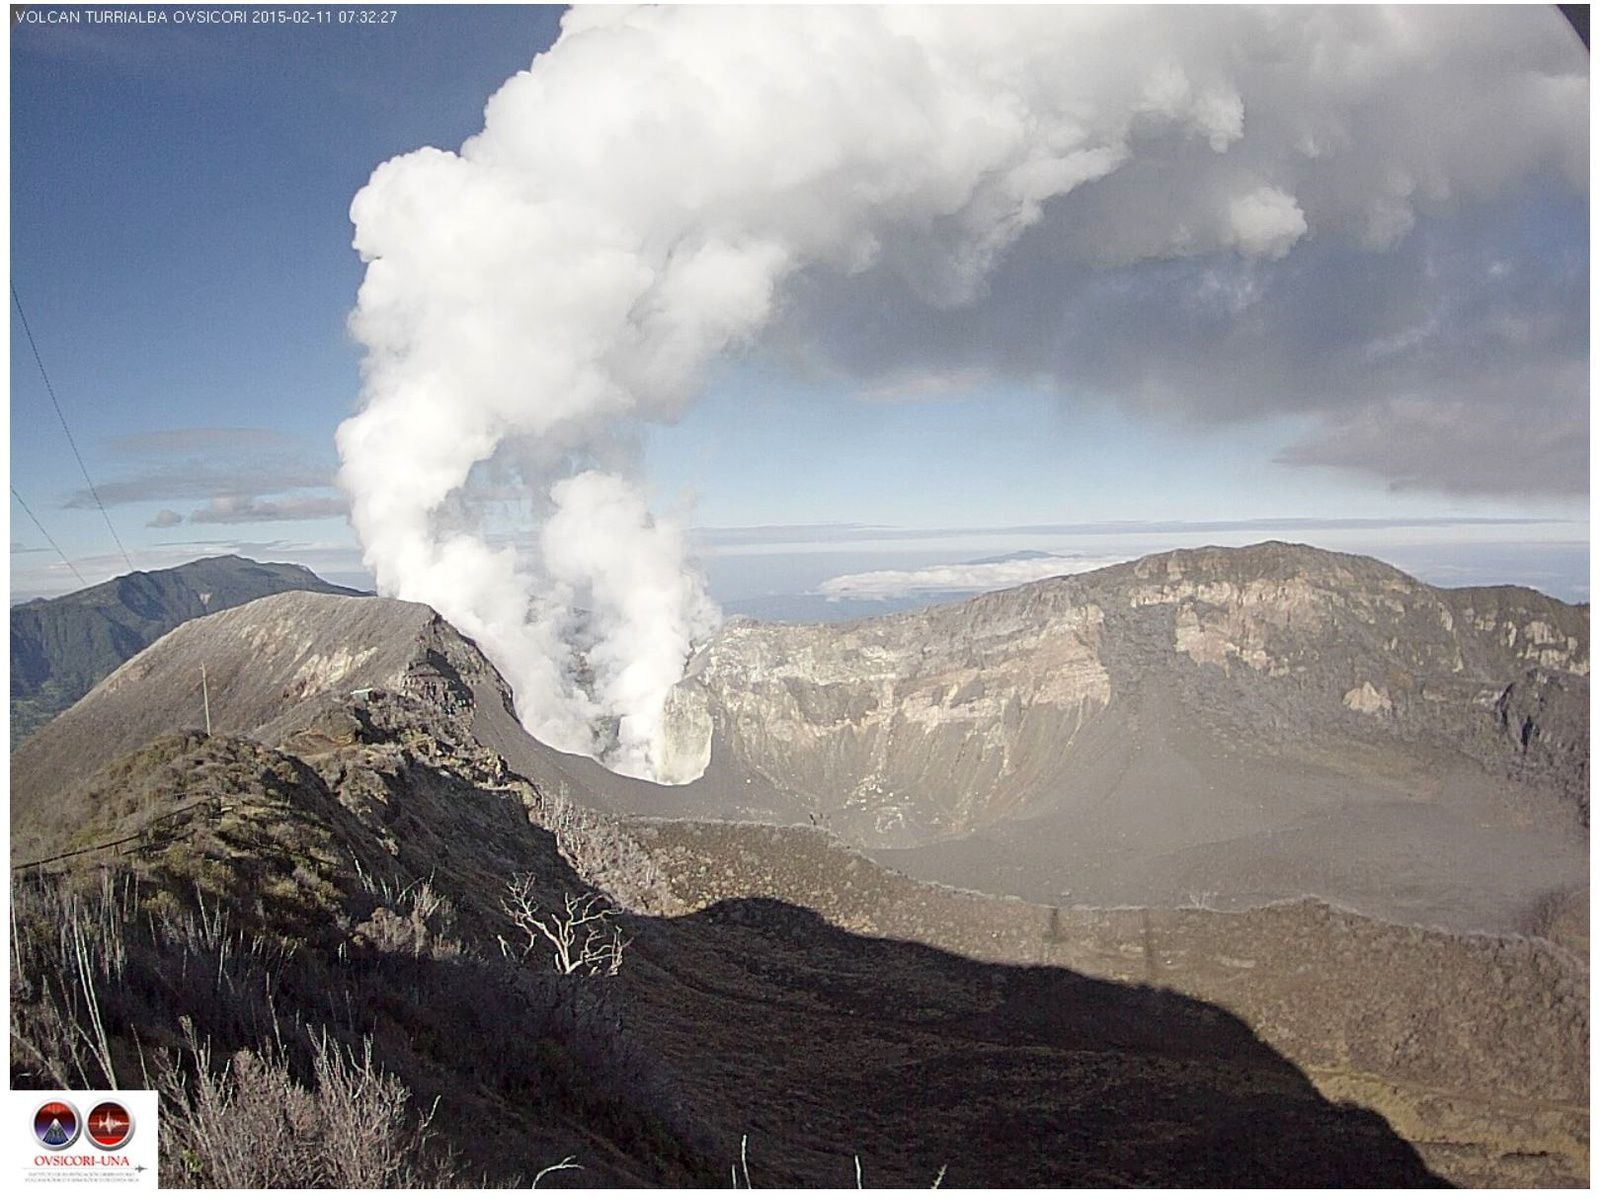 Turrialba - white fumaroles of the western crater 11.02.02015 / 7:32 - webcam Ovsicori